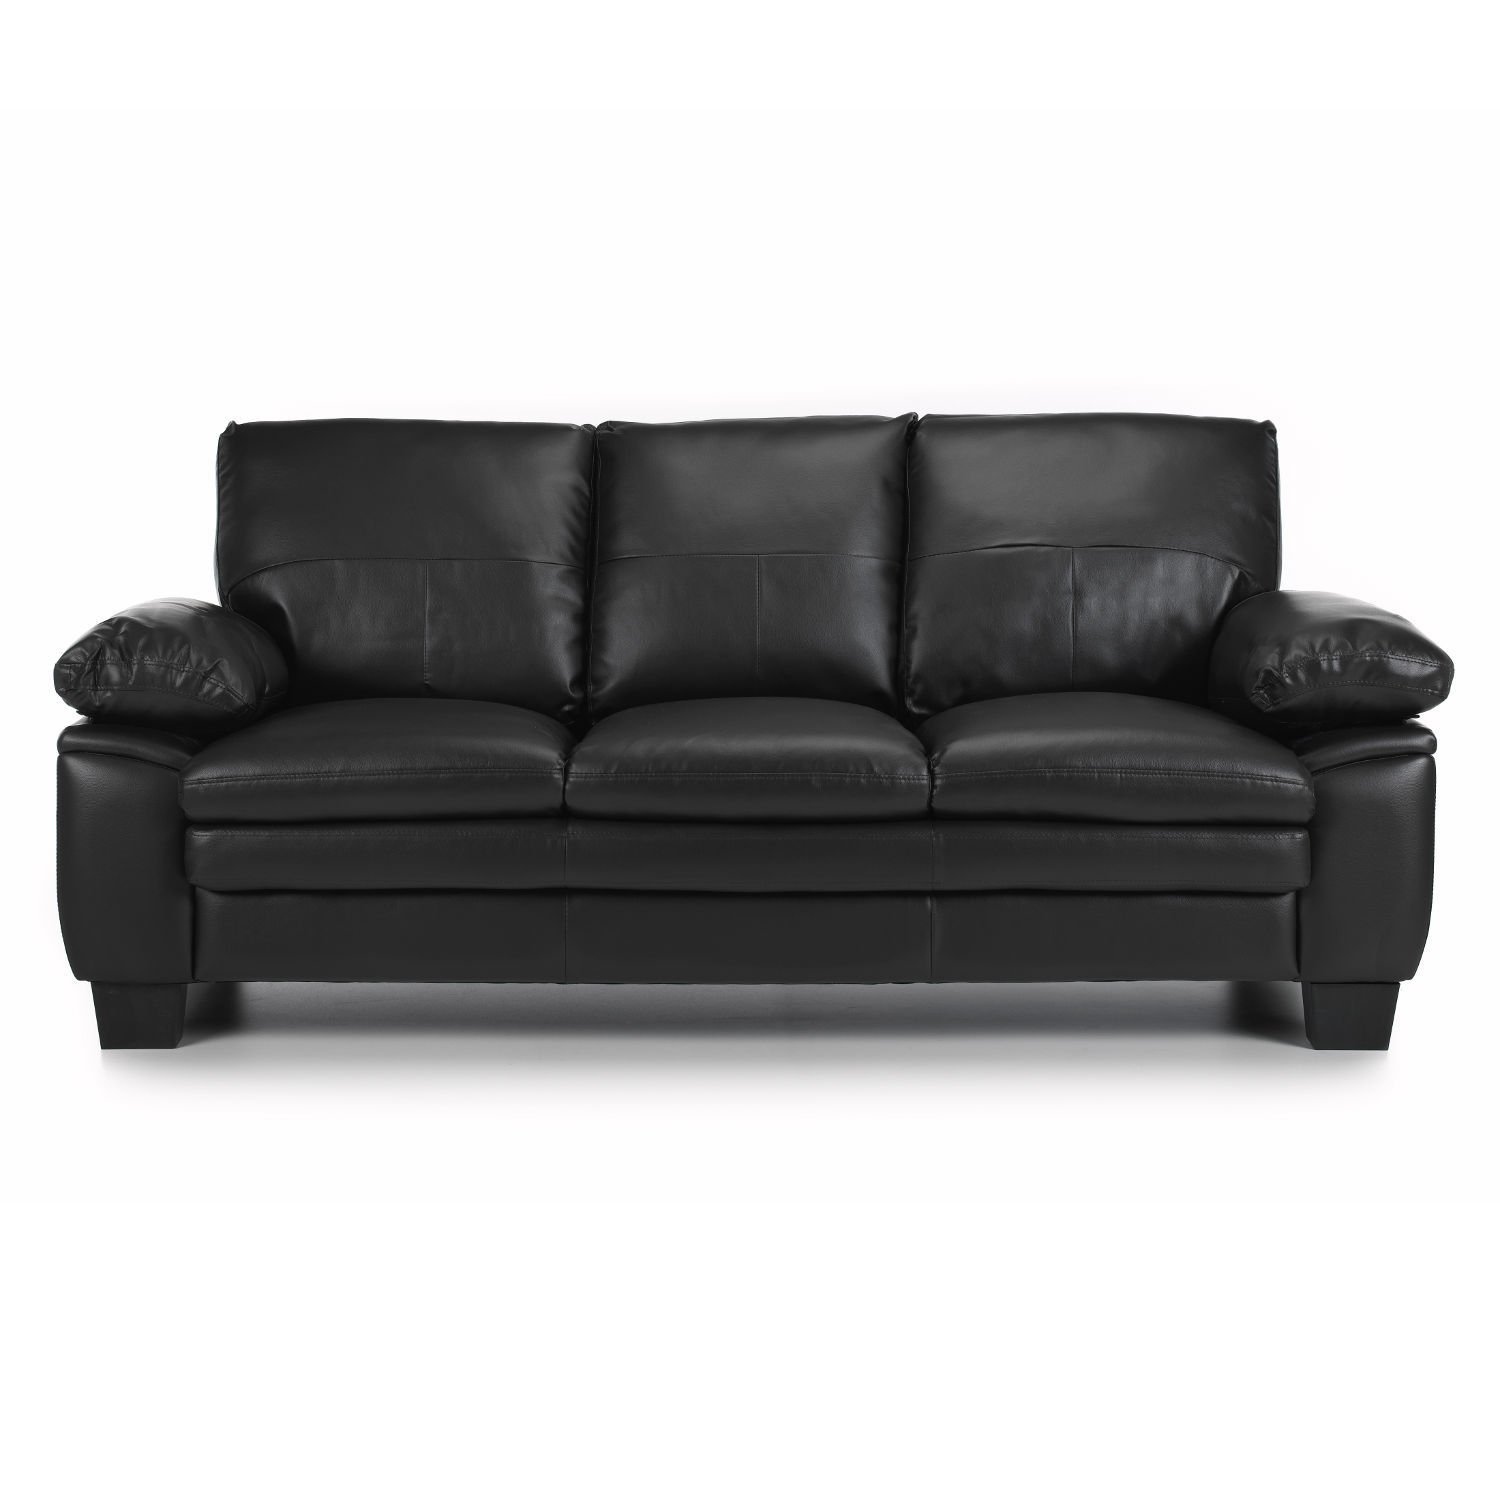 Modern Texas 3 Seater Leather Sofa Sticker 3 seater leather sofa